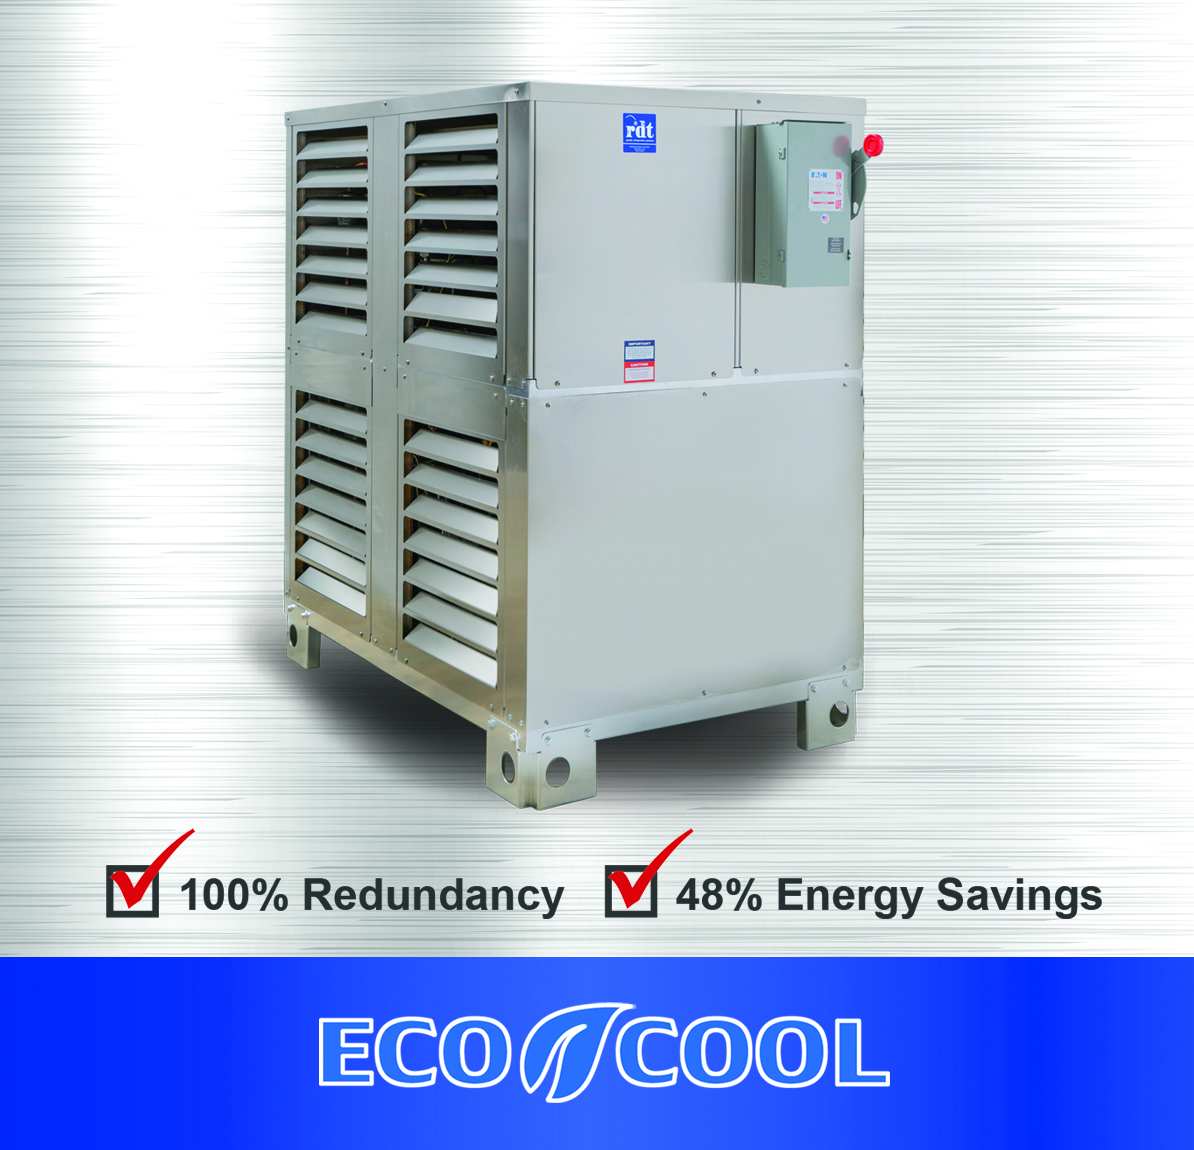 Relationship Between Refrigeration Redundancy and Service